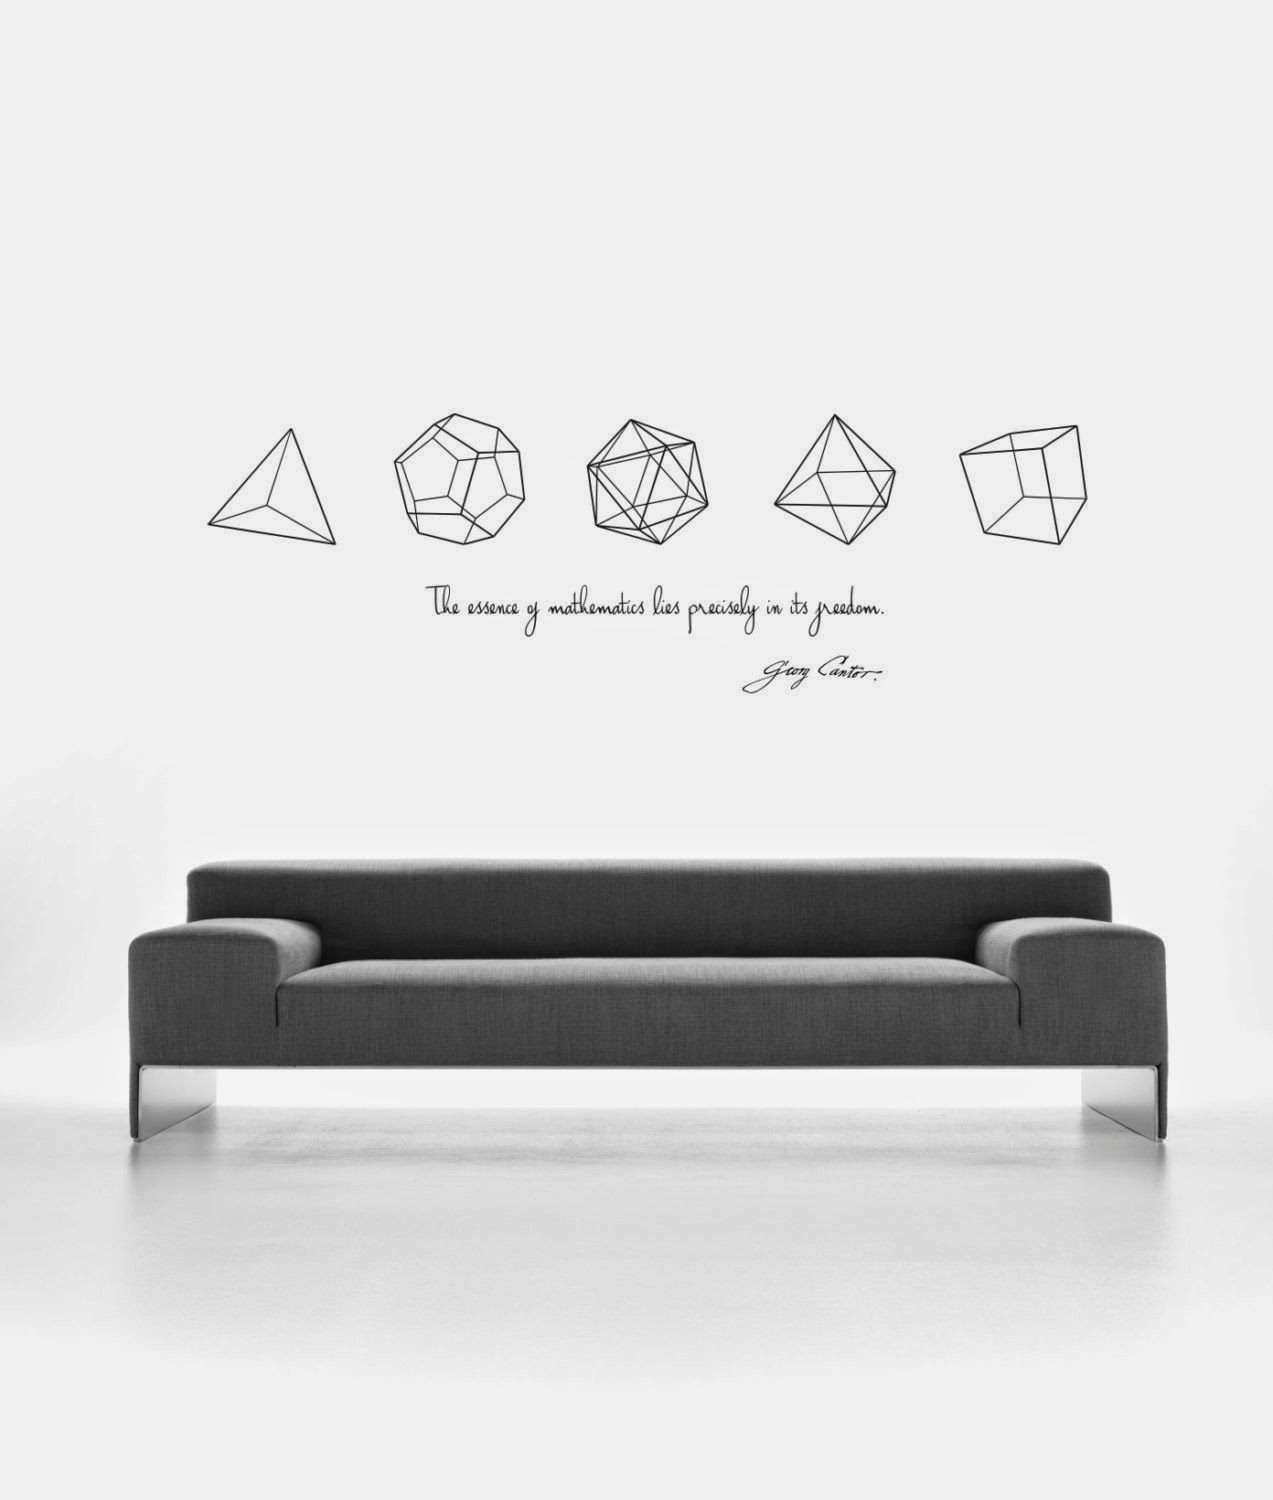 This design is one of my favorite science wall decals cantors quote on the essence of mathematics and the five platonic solids